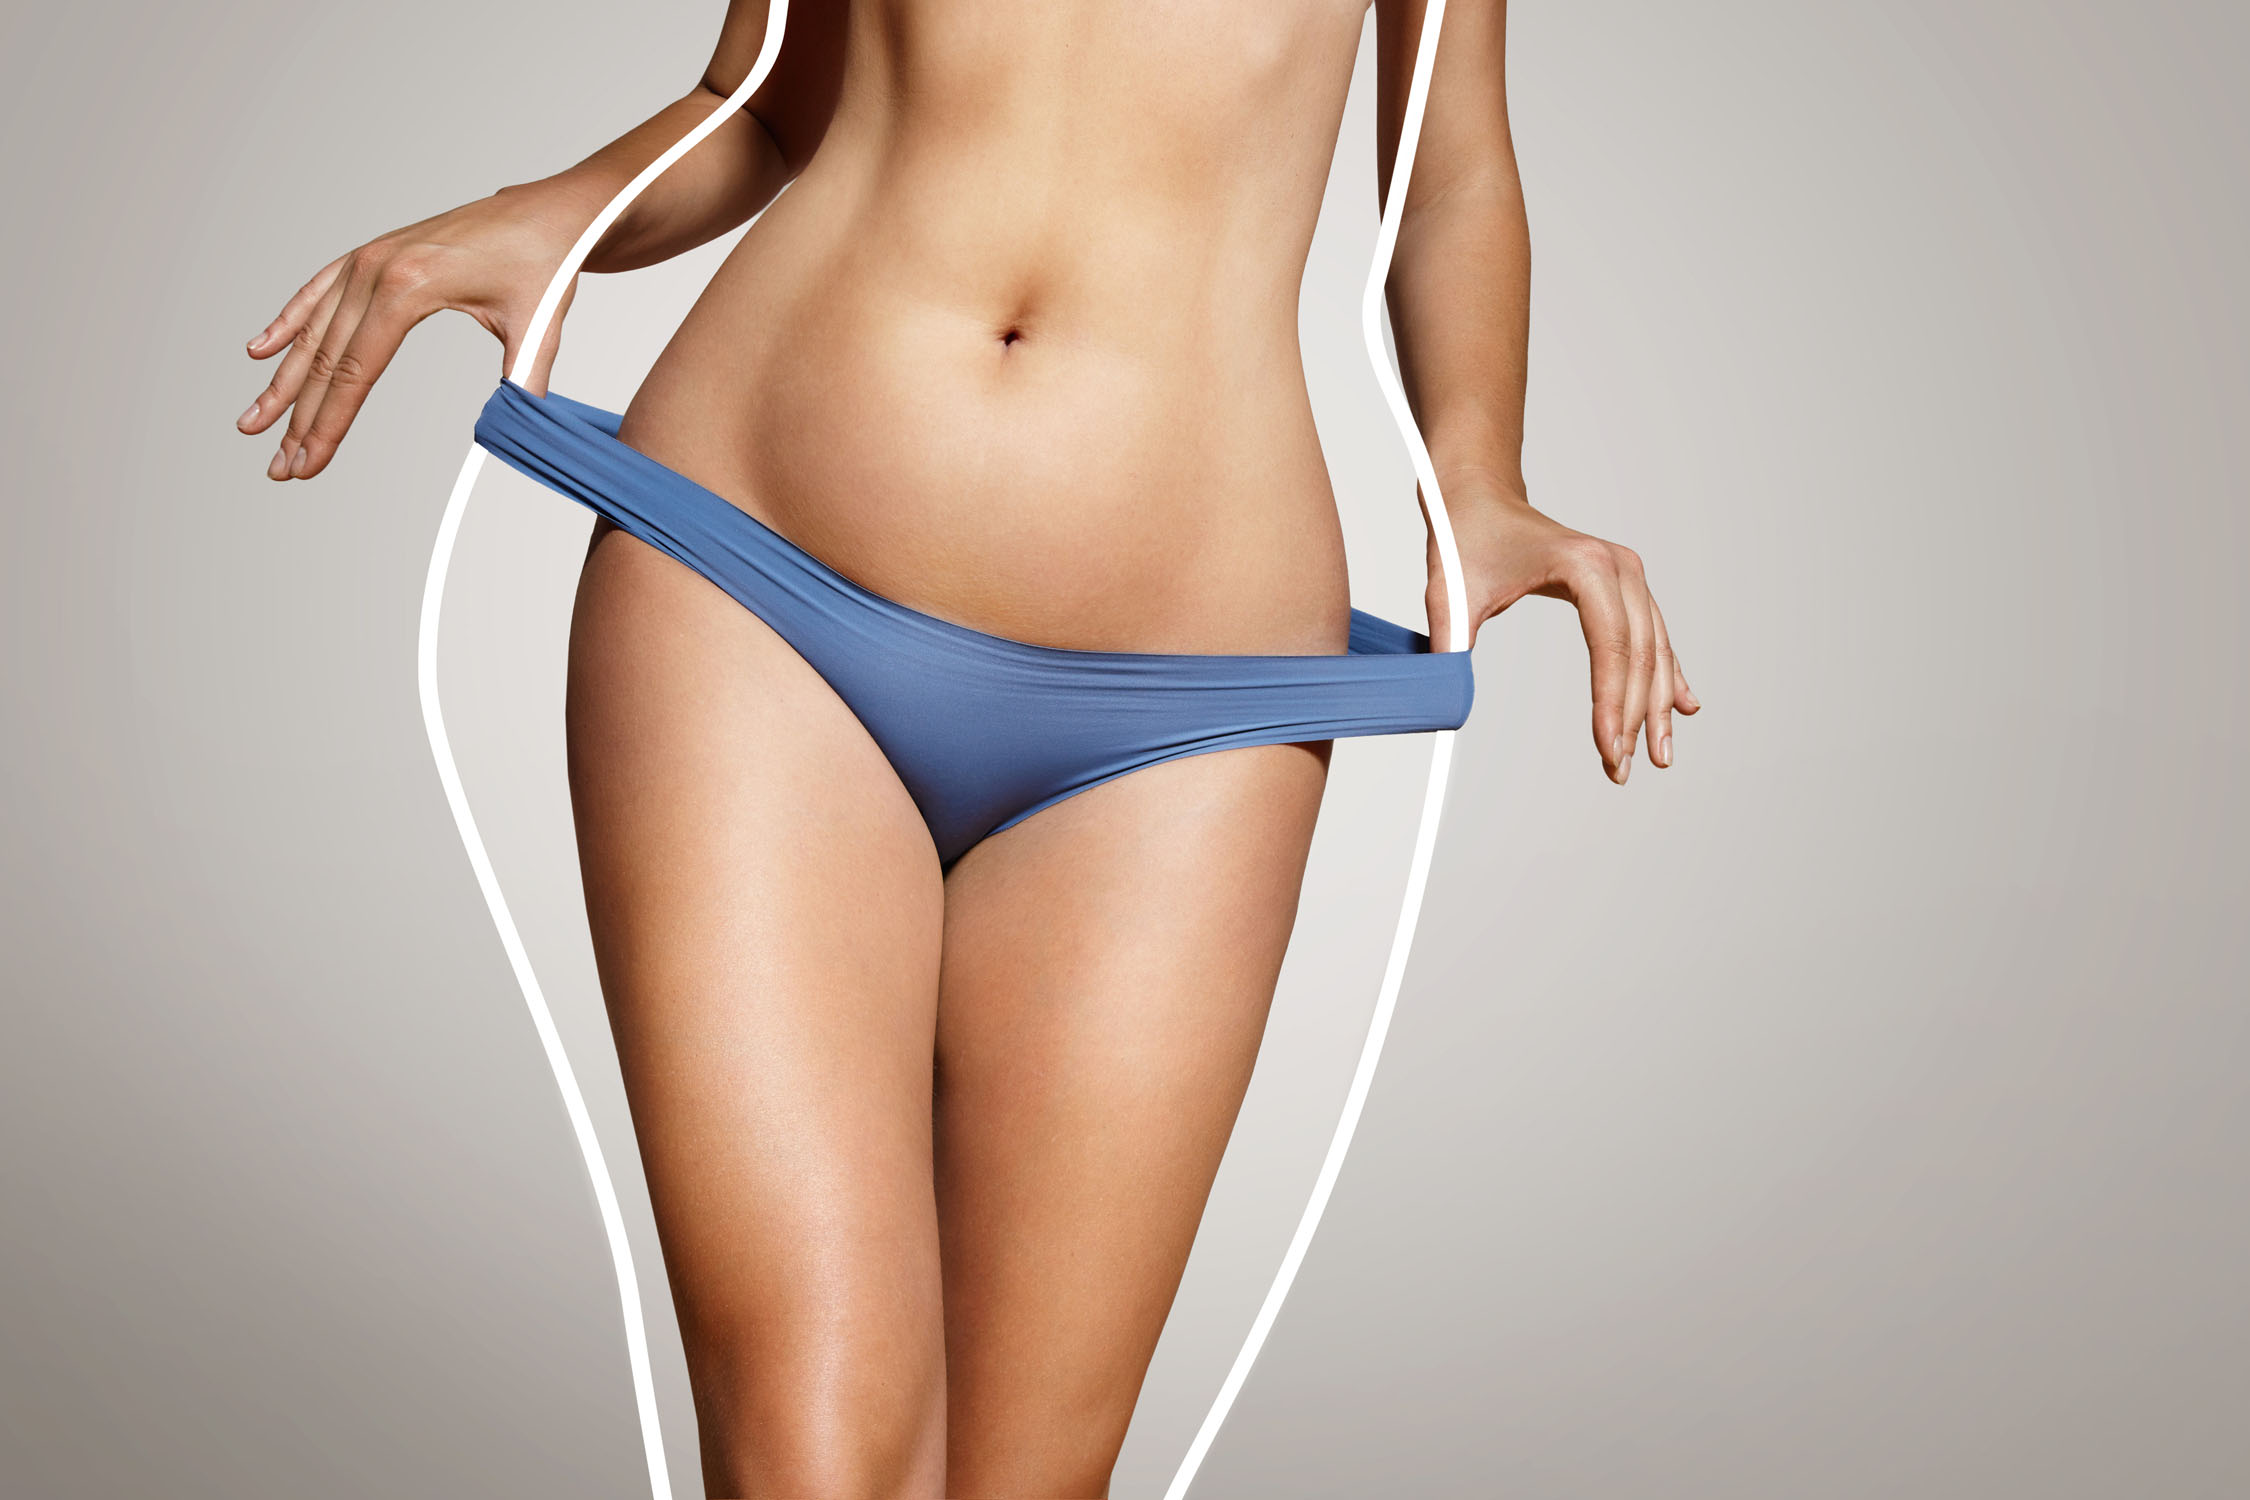 How Does UltraSlim Treatment Compare To Other Weight Loss Options?